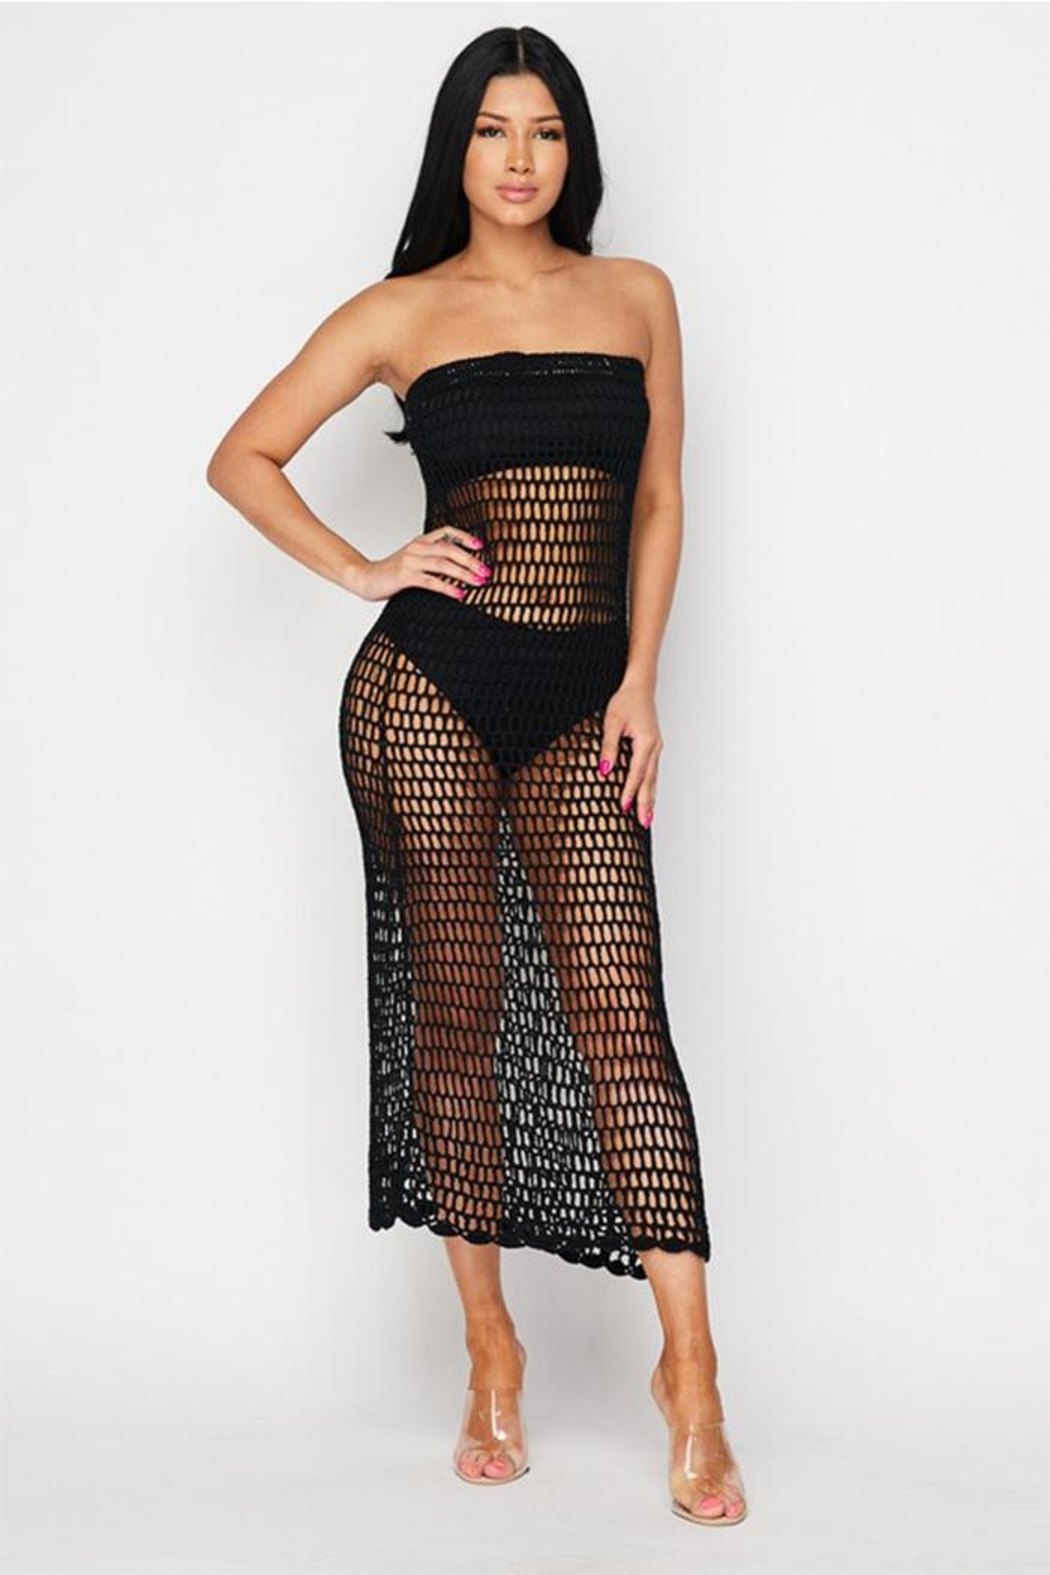 Hot Delicious Crochet Skirt Or Dress From New York By Dor Ldor